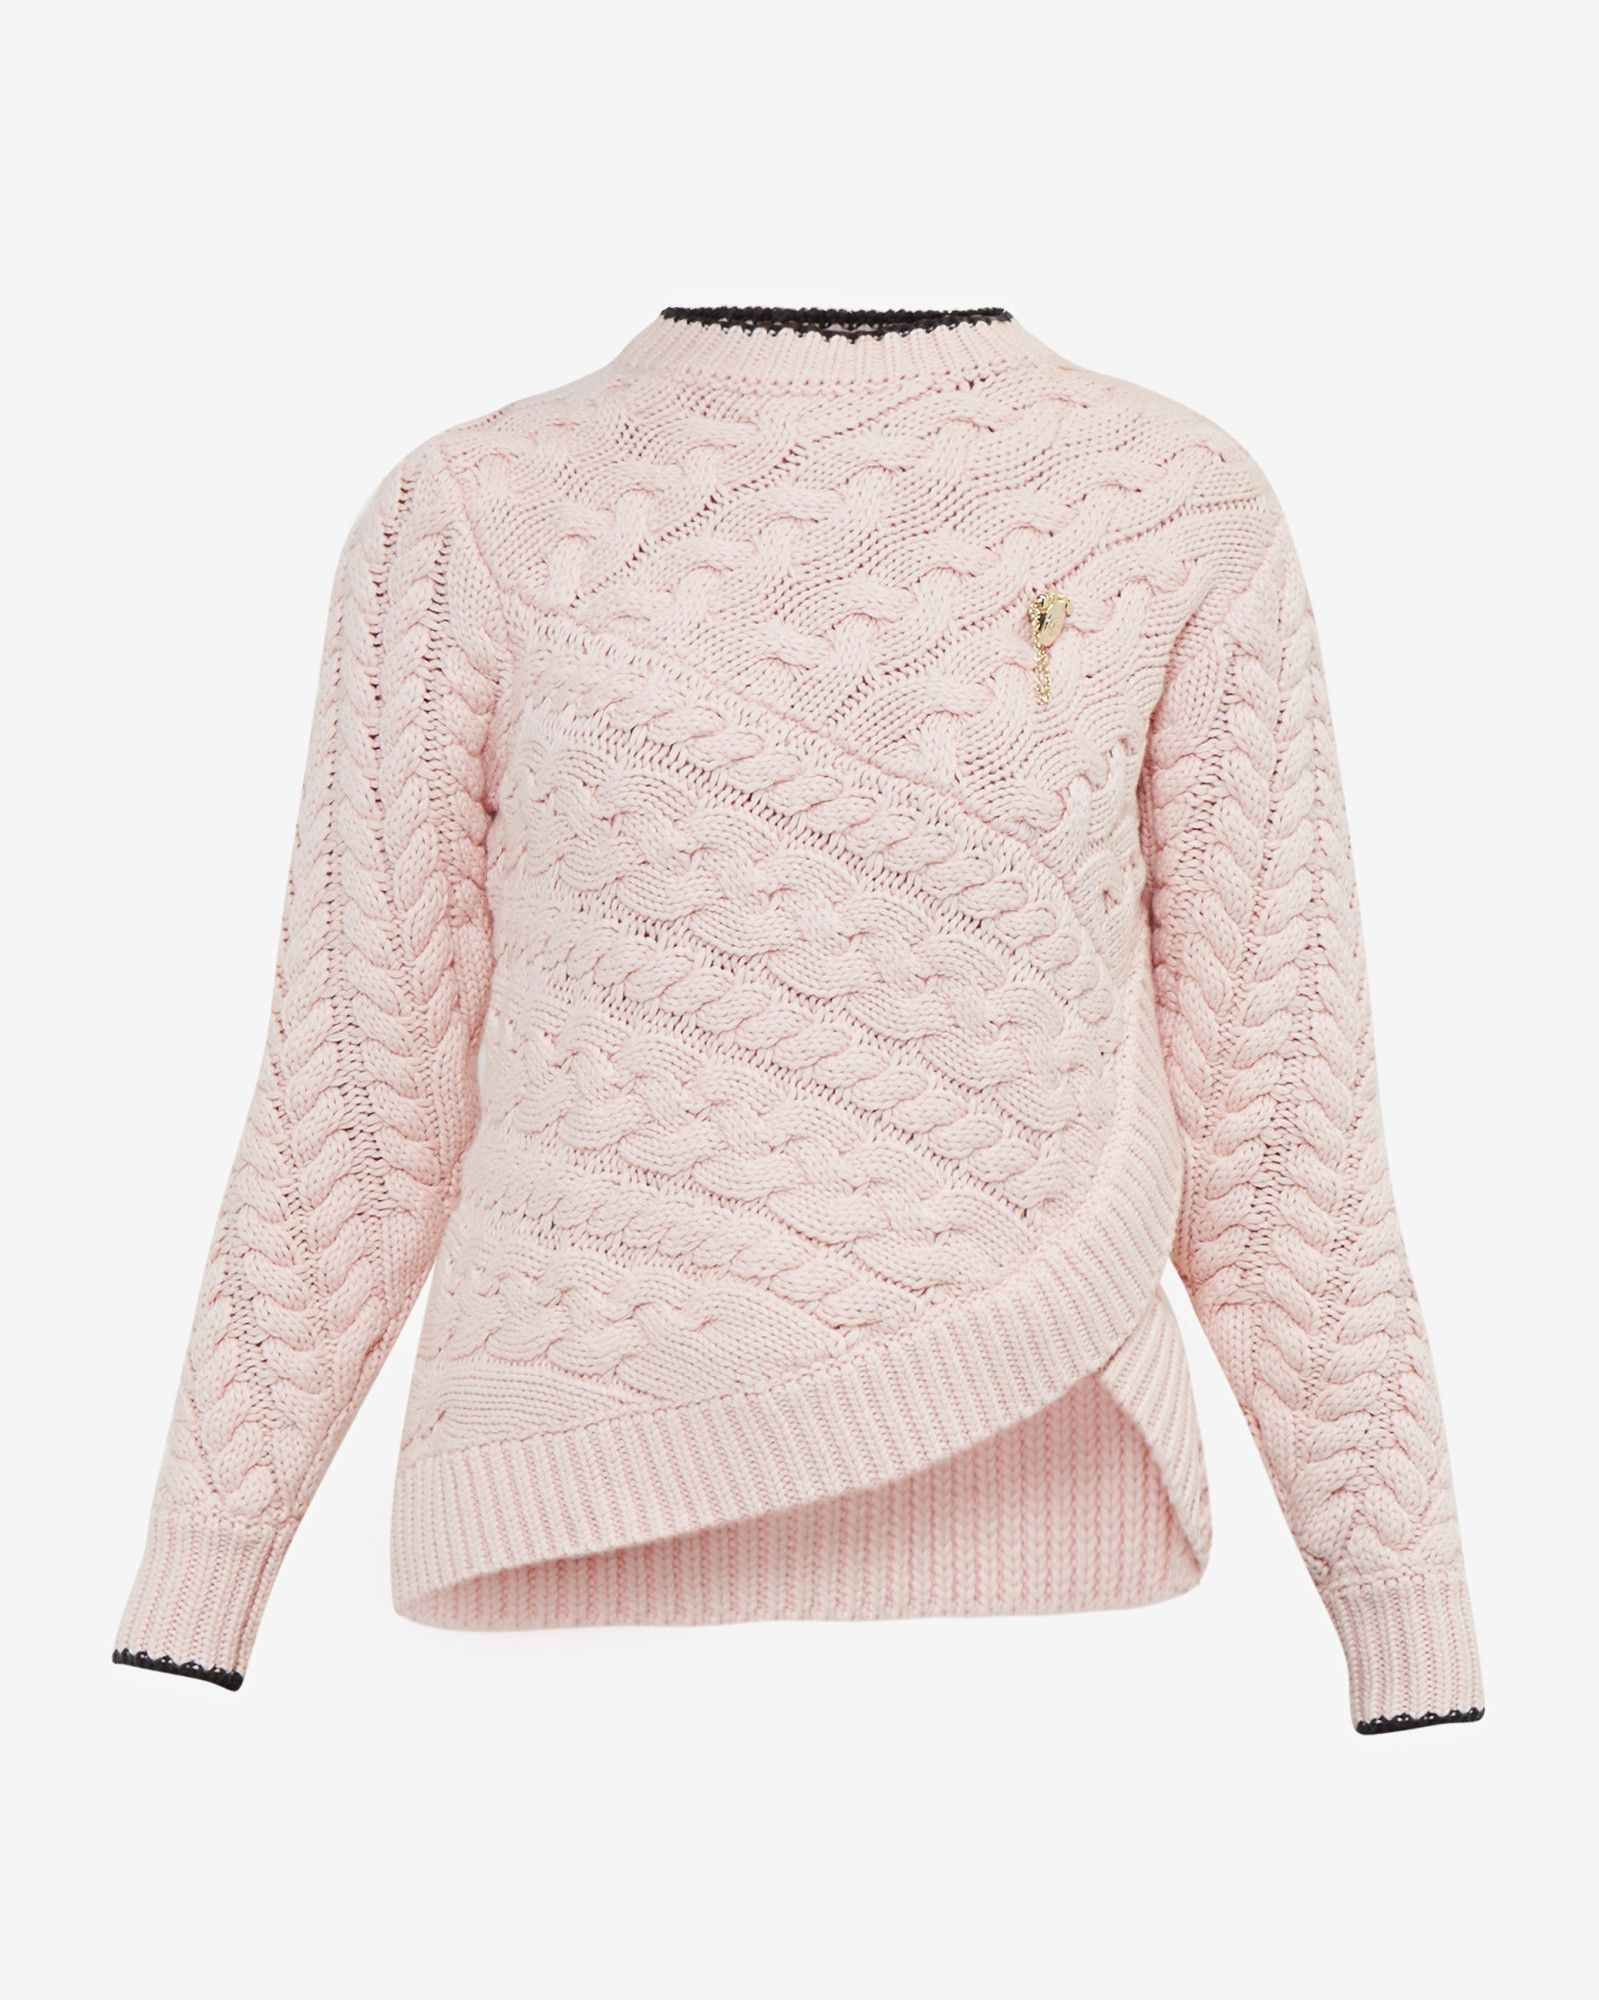 Asymmetric cable knit sweater - Pale Pink | Sweaters | Ted Baker ...